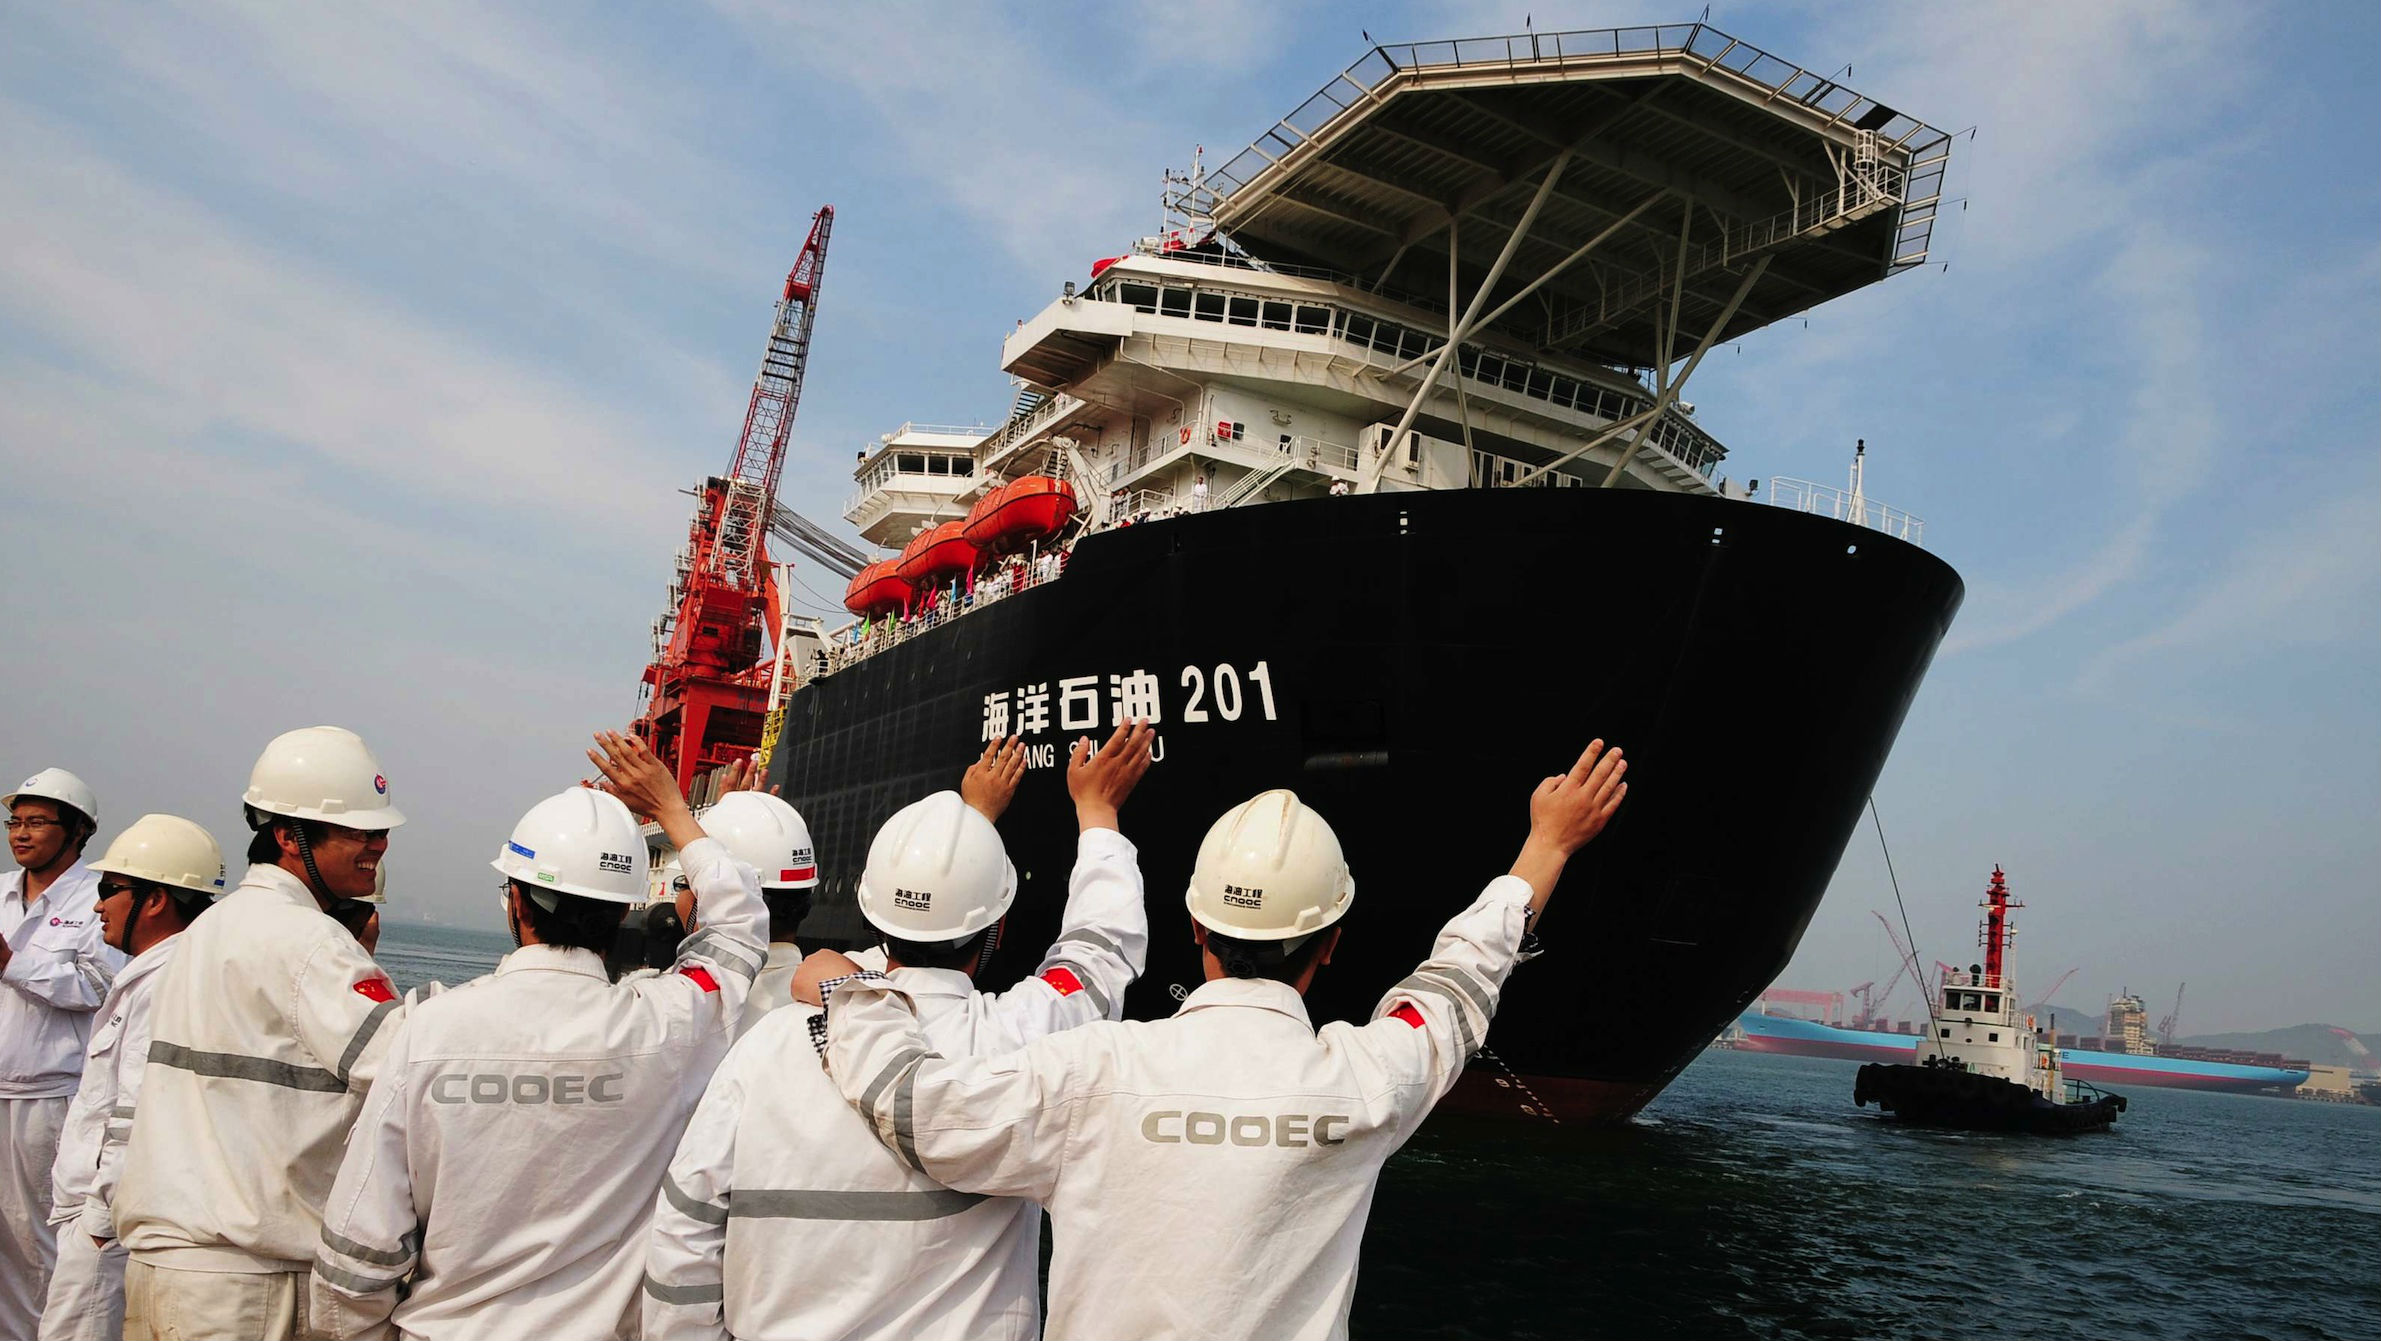 The Haiyangshiyou 201, operated by China Offshore Oil Engineering Corporation, is used on CNOOC's deep-water pipe laying operation in the South China Sea.